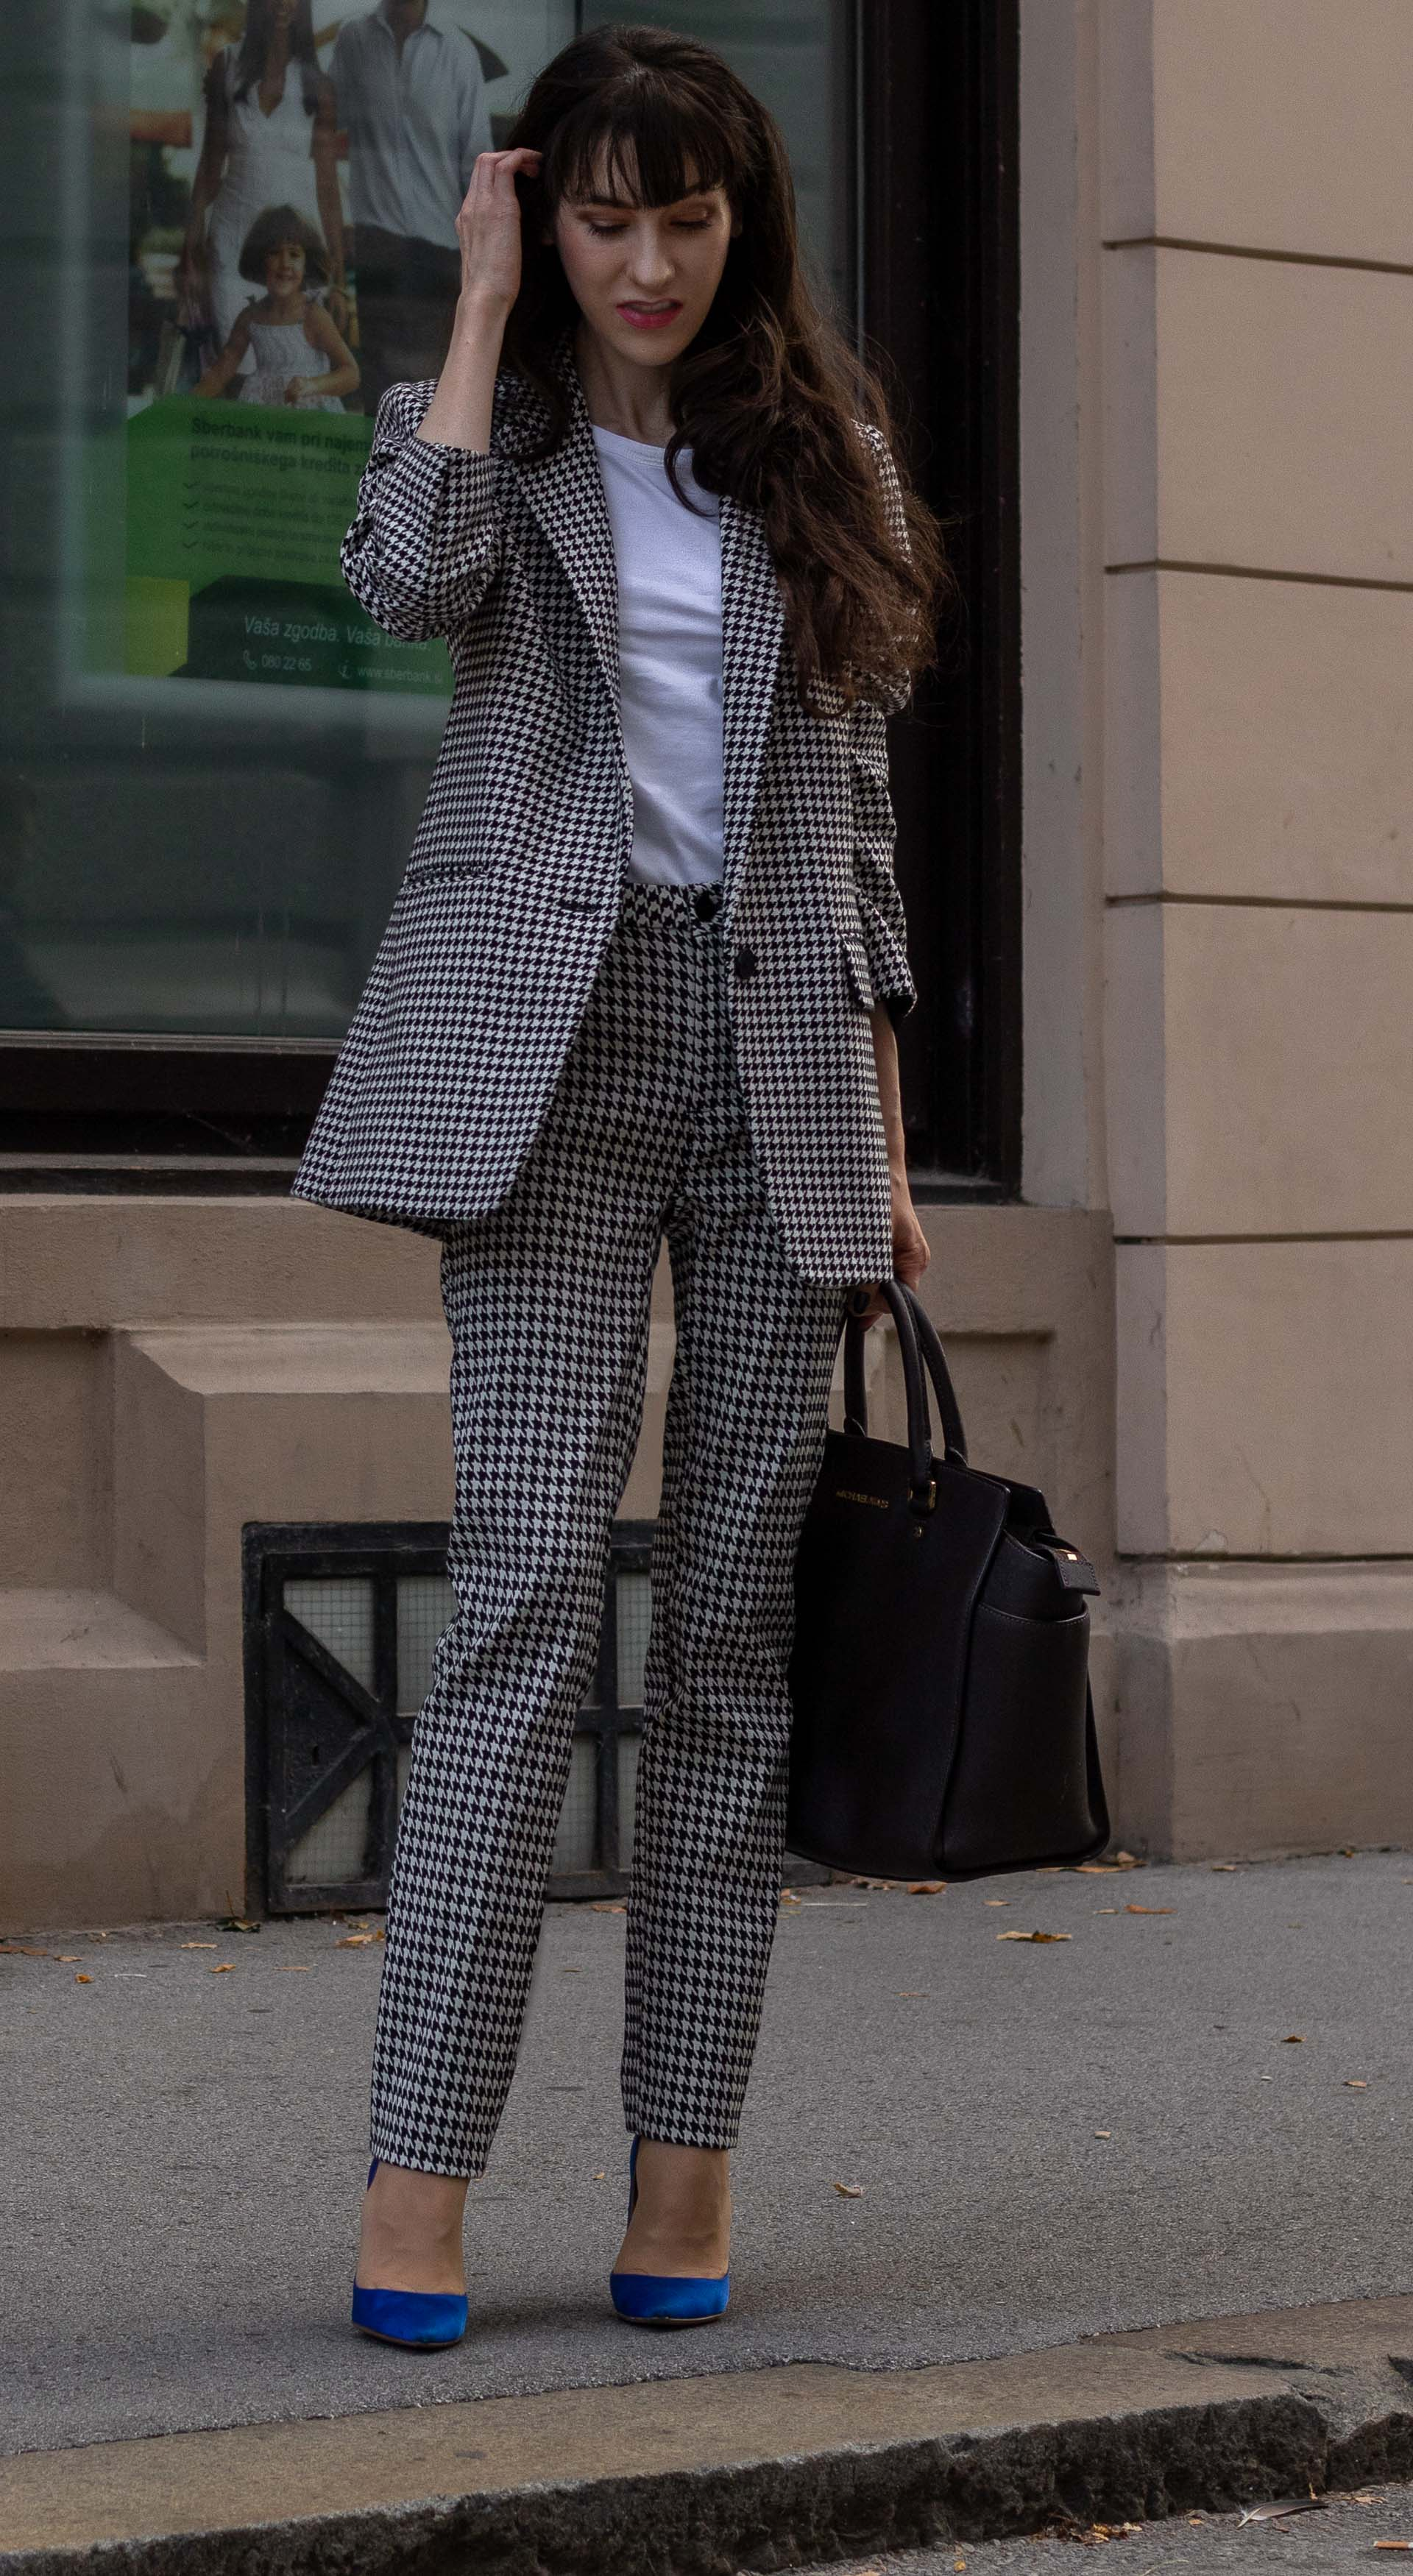 Fashion blogger Veronika Lipar of Brunette from Wall Street dressed in white Sandro houndstooth tailored blazer European Culture houndstooth pants Michael Kors Selma bag blue Gianvito Rossi court shoes for work in fall